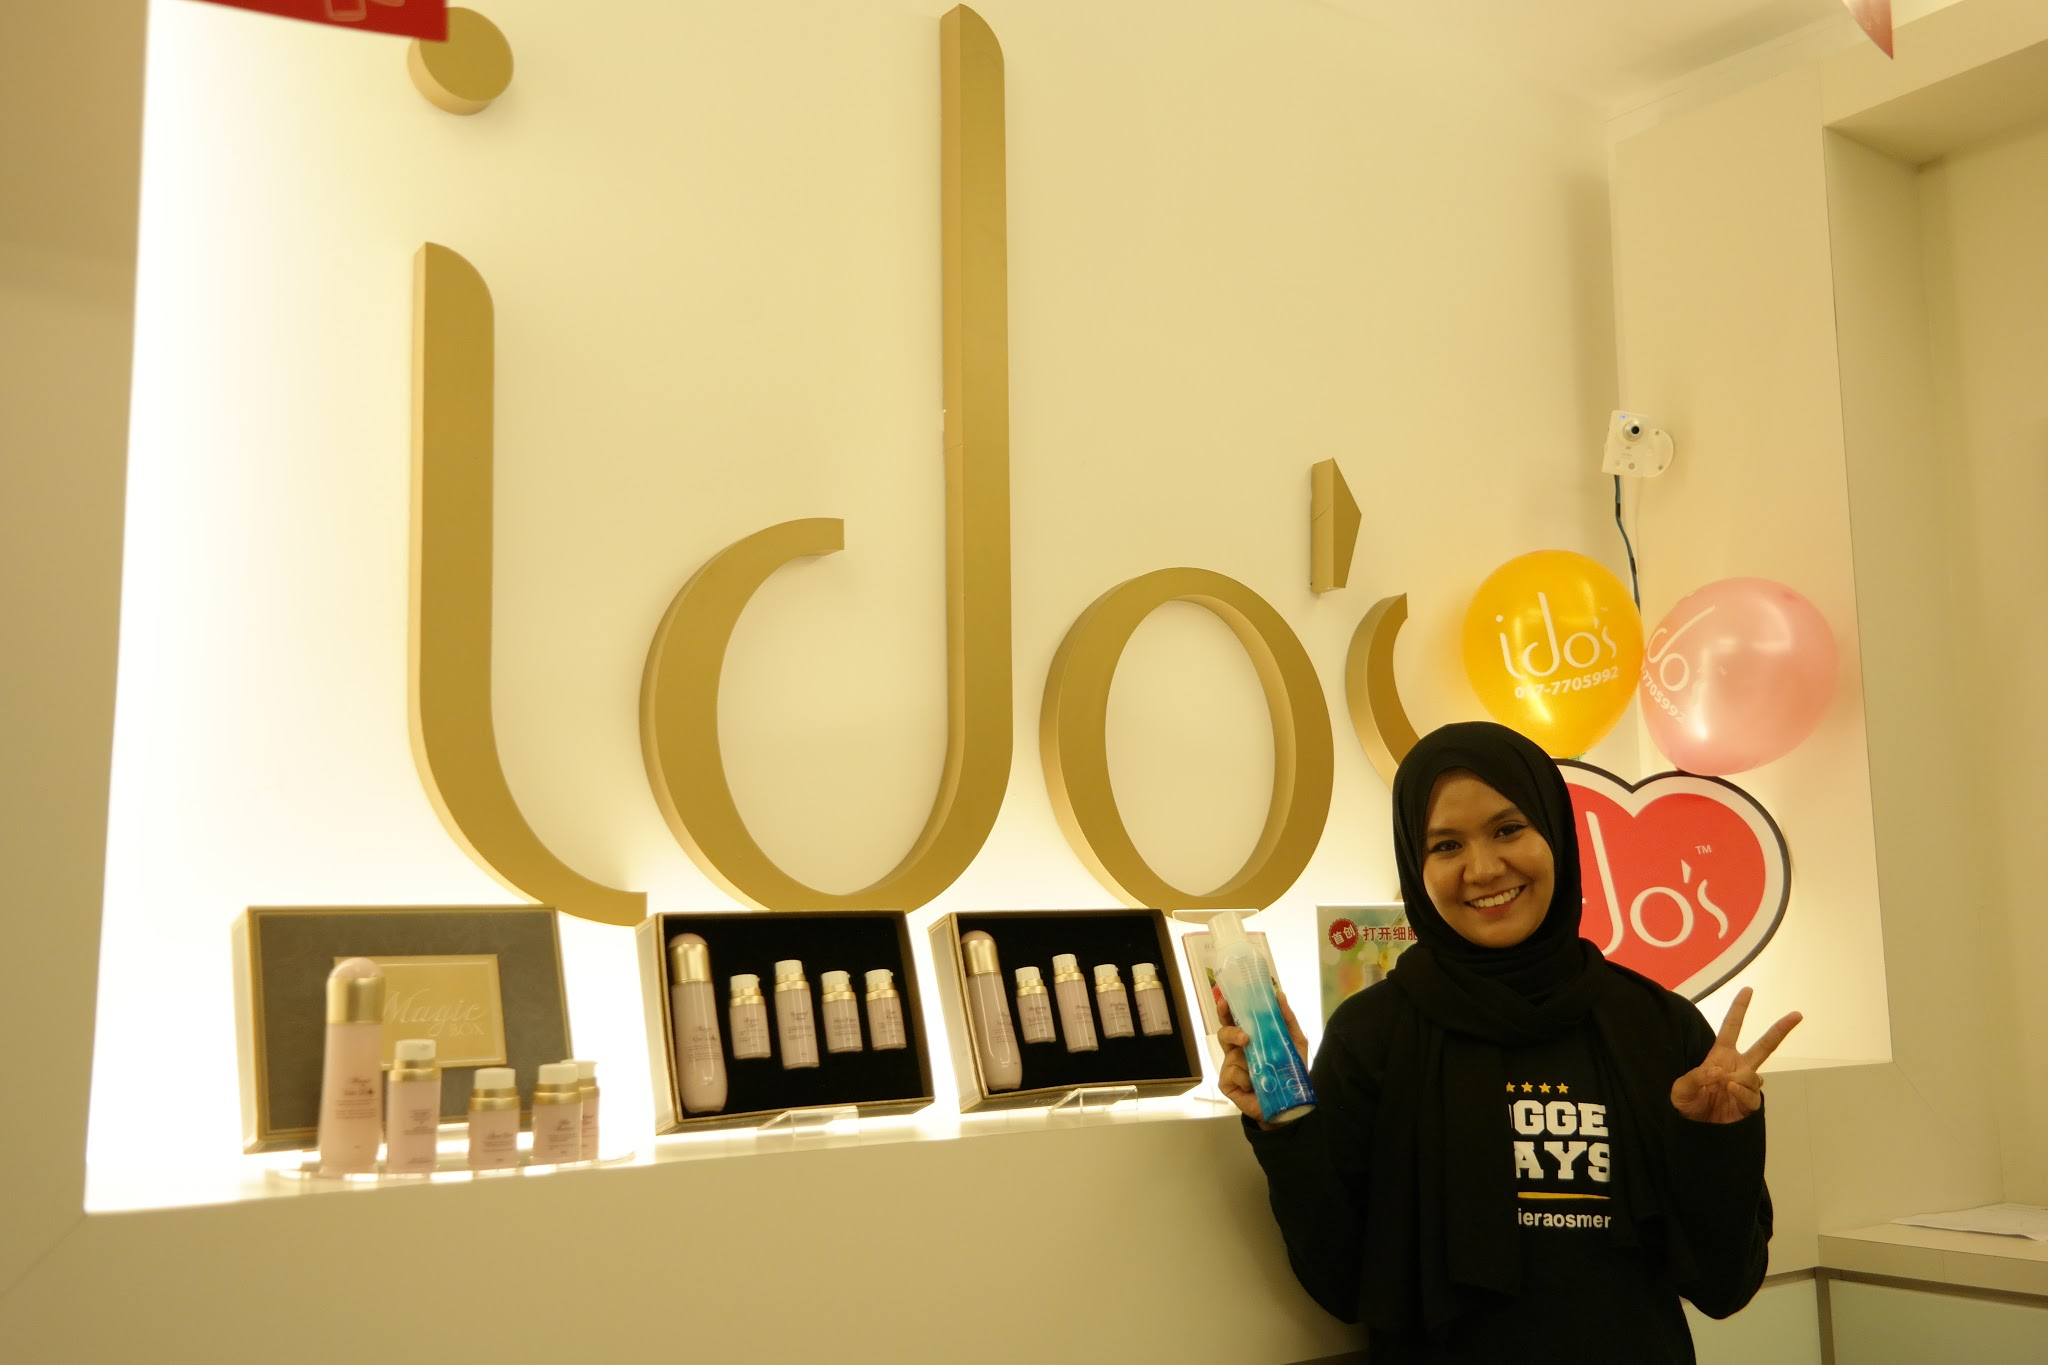 Ido's Clinic X Magic Water Blogger Party! Ido's Clinic, Magic Water, Functions of Magic Water, Best face mist, Sumuzu Hair Removal treatment, malaysian blogger spa party, spa party, ido's clinic setiawalk puchong,